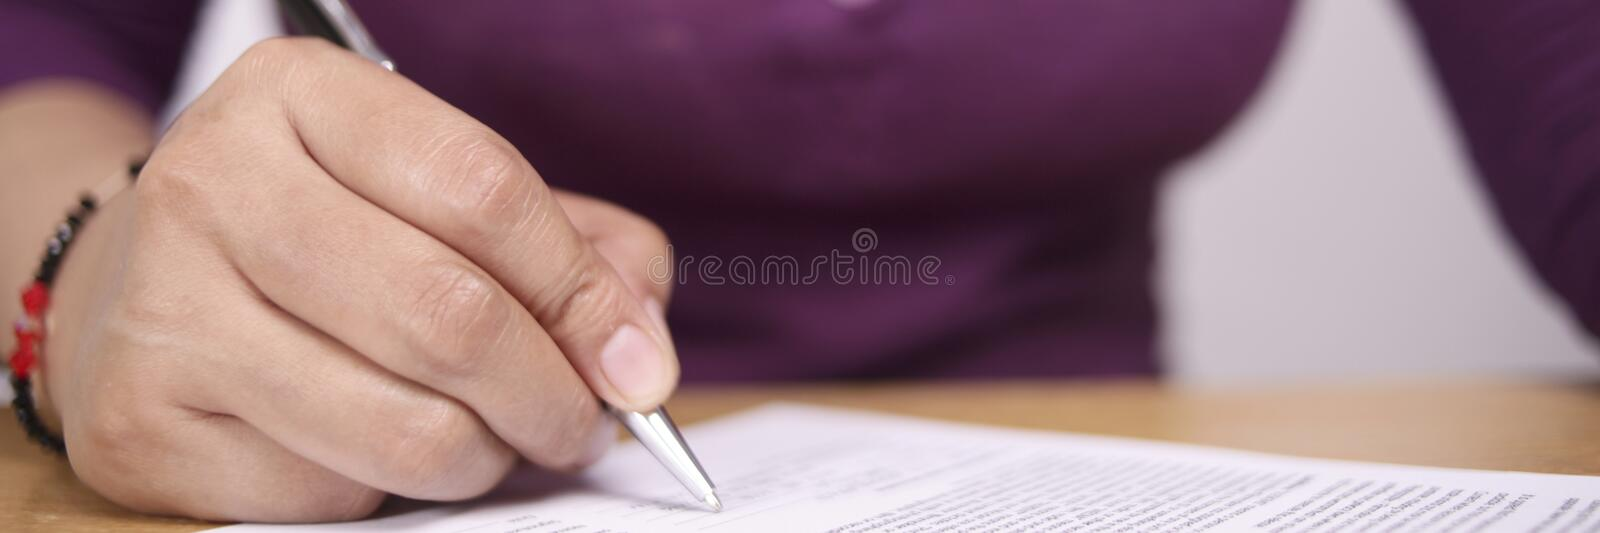 Wide View of Businesswoman Signing Contract royalty free stock image